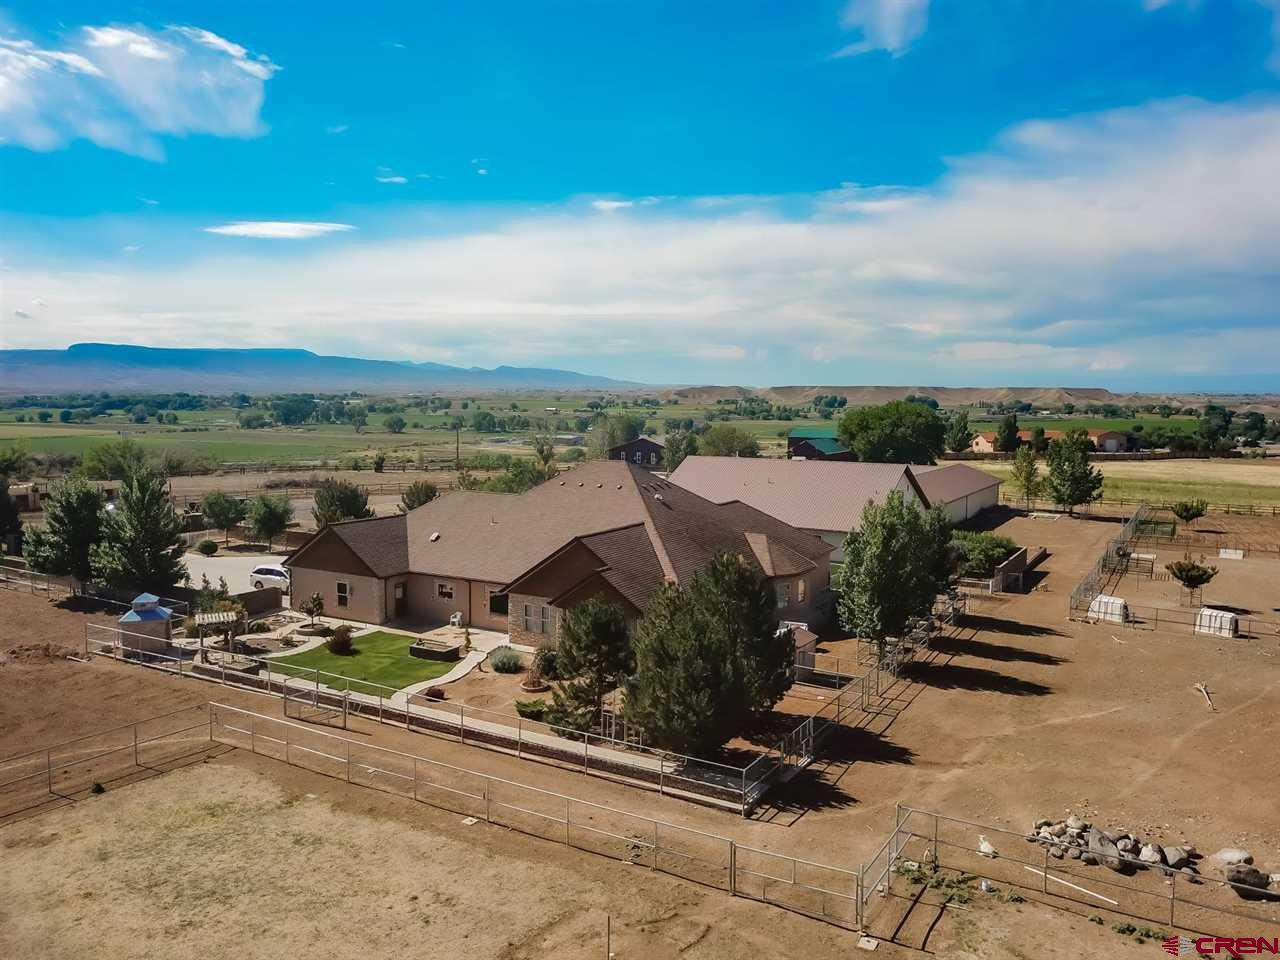 8439 2095 Road, Orchard City, CO 81410